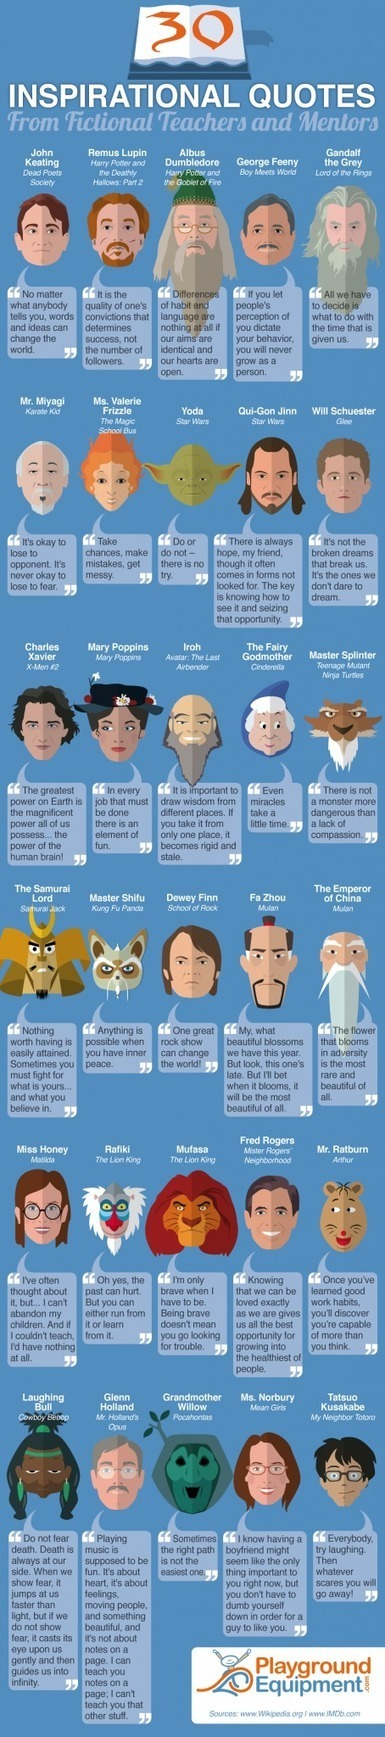 30 Inspirational Quotes from Fictional Teachers and Mentors Infographic | Teacher's corner | Scoop.it